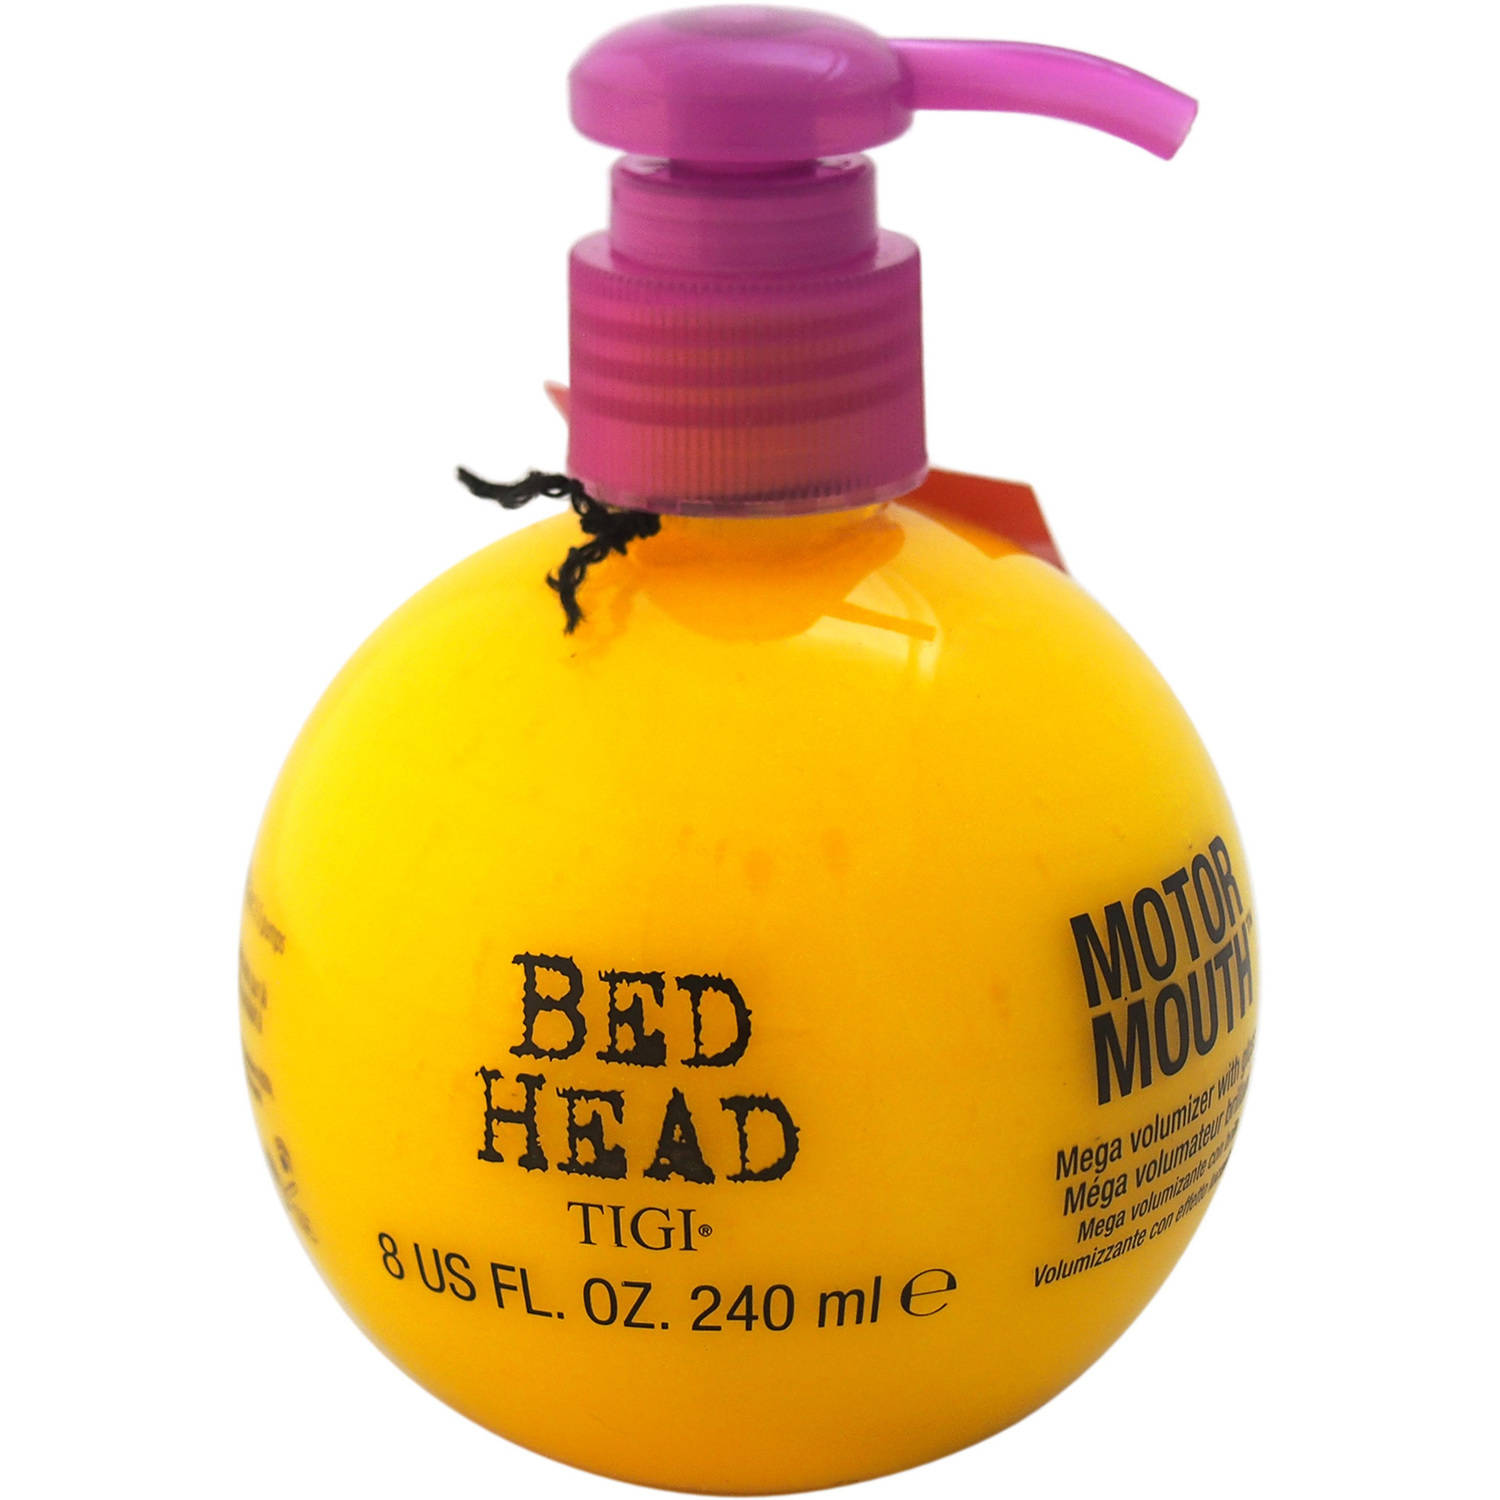 Bed Head Motor Mouth - Mega Volumizer With Gloss by TIGI for Unisex, 8 oz